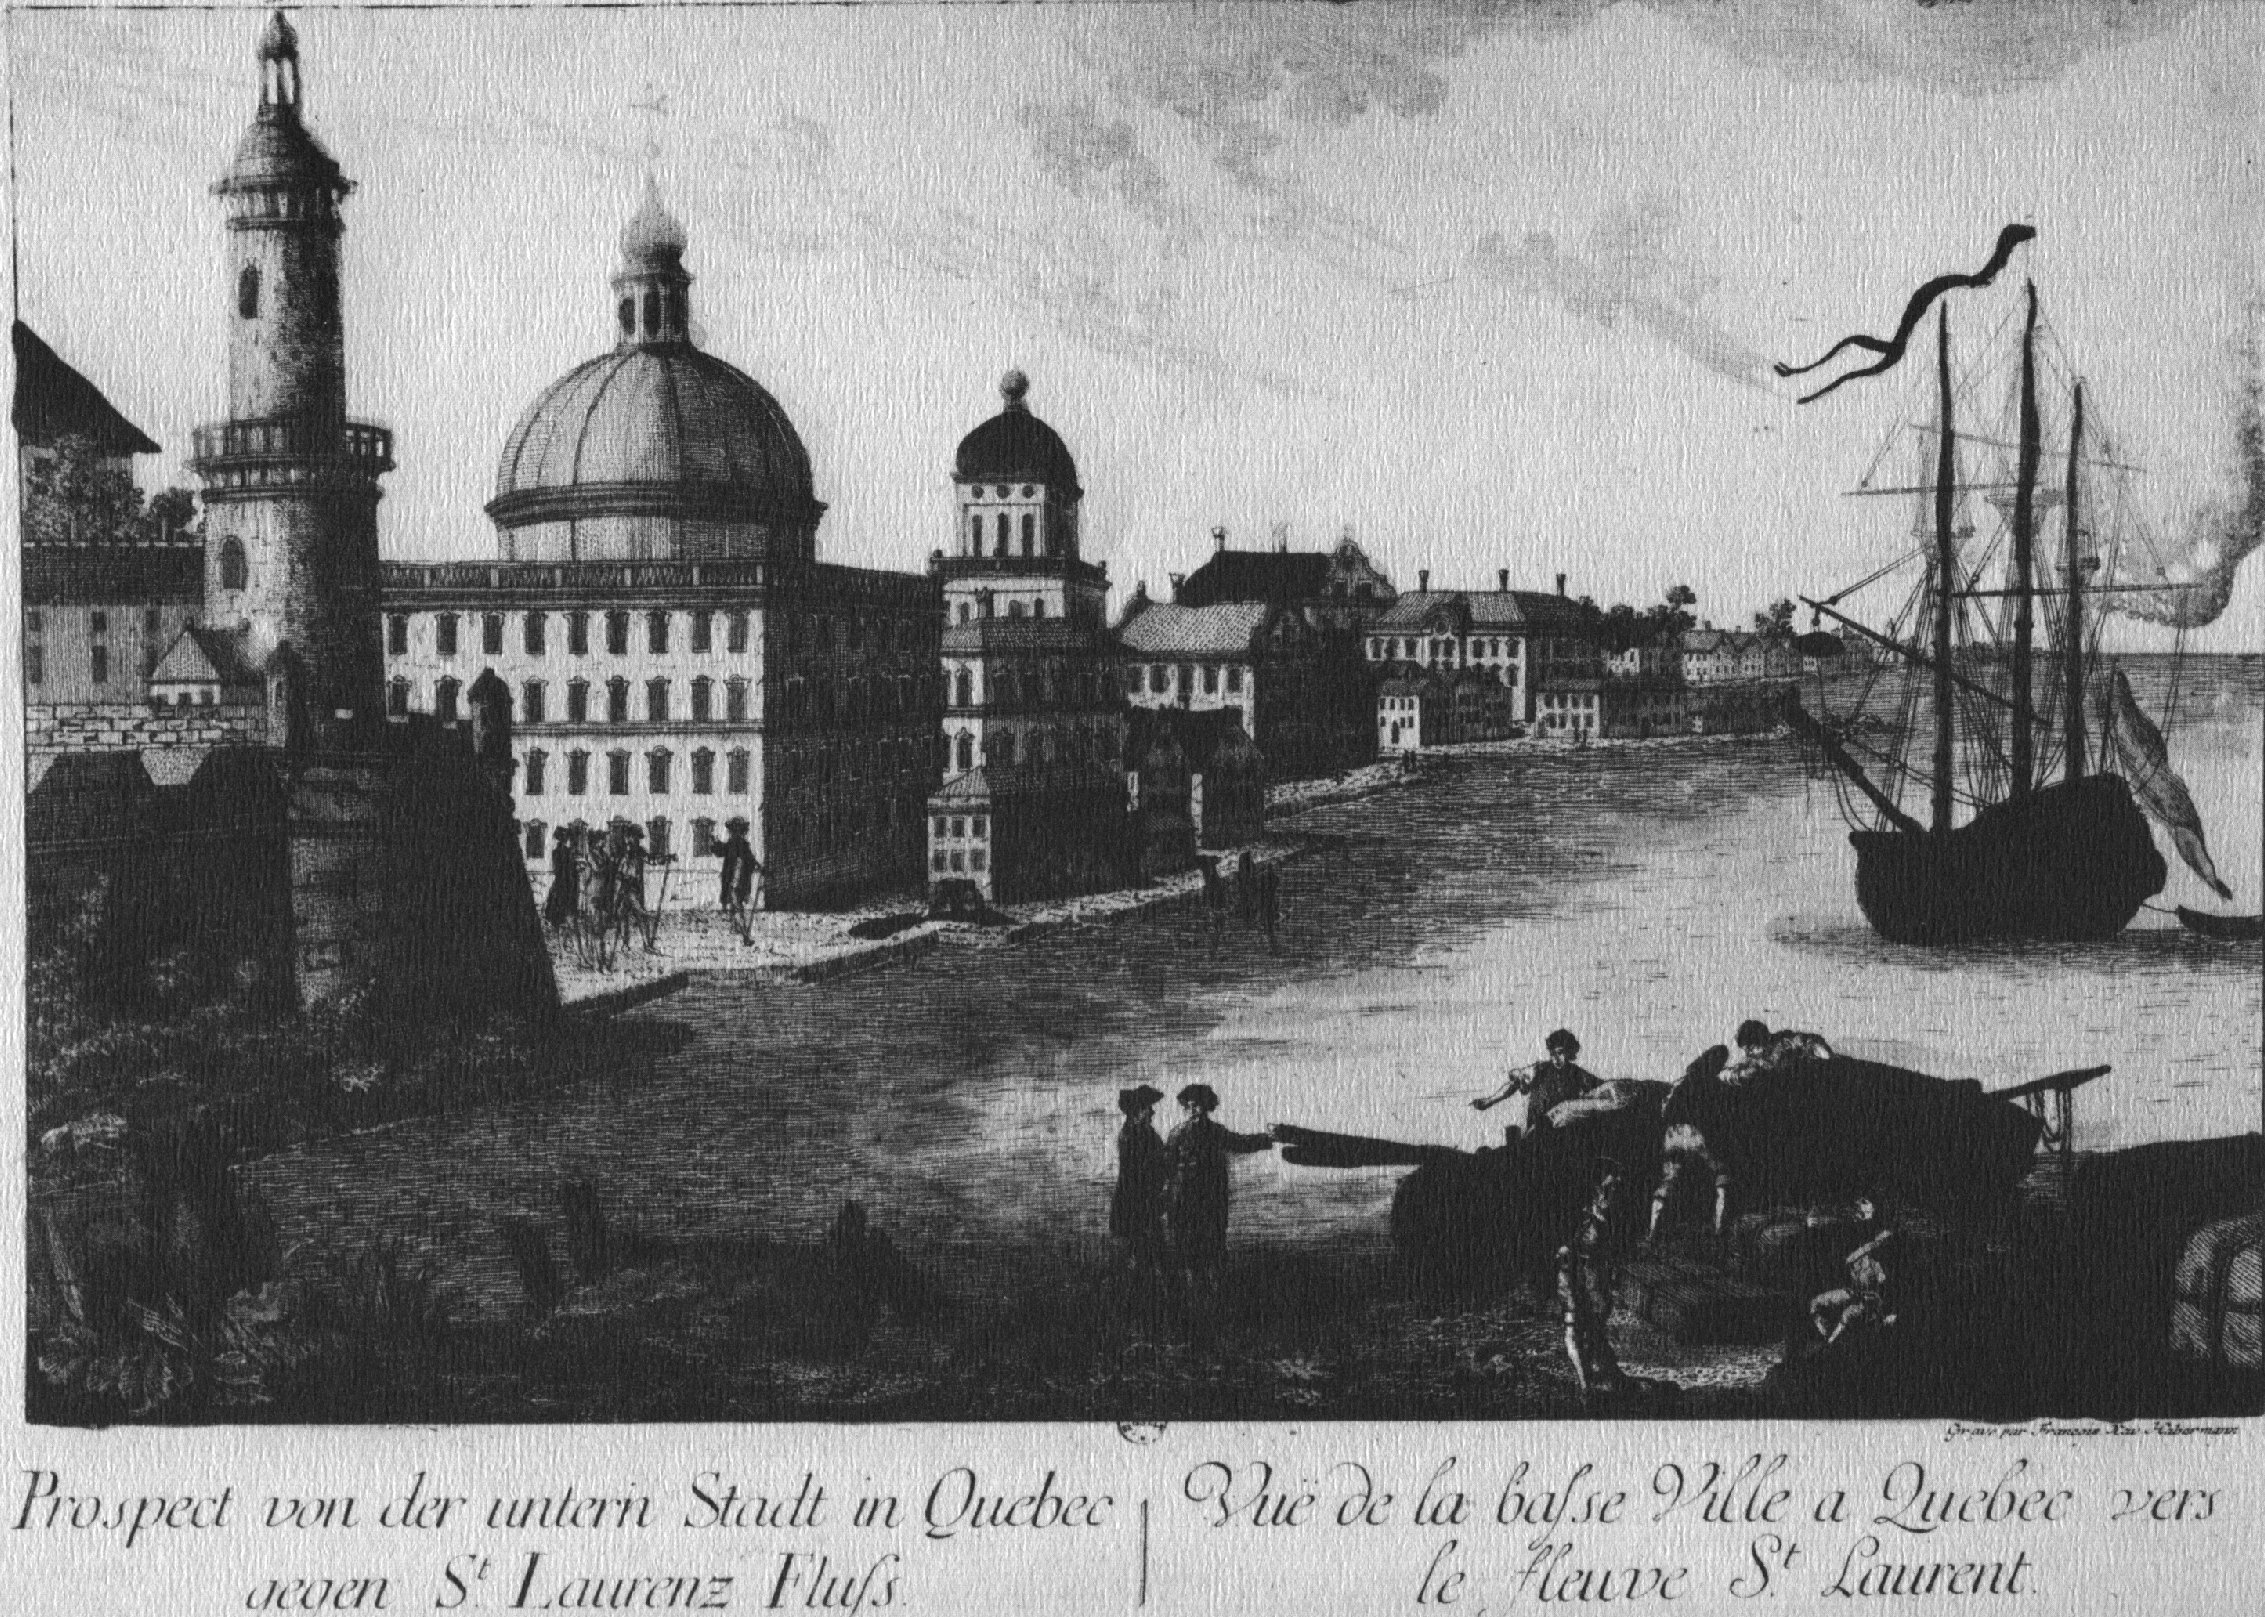 Image of Old Quebec City in NEW FRANCE